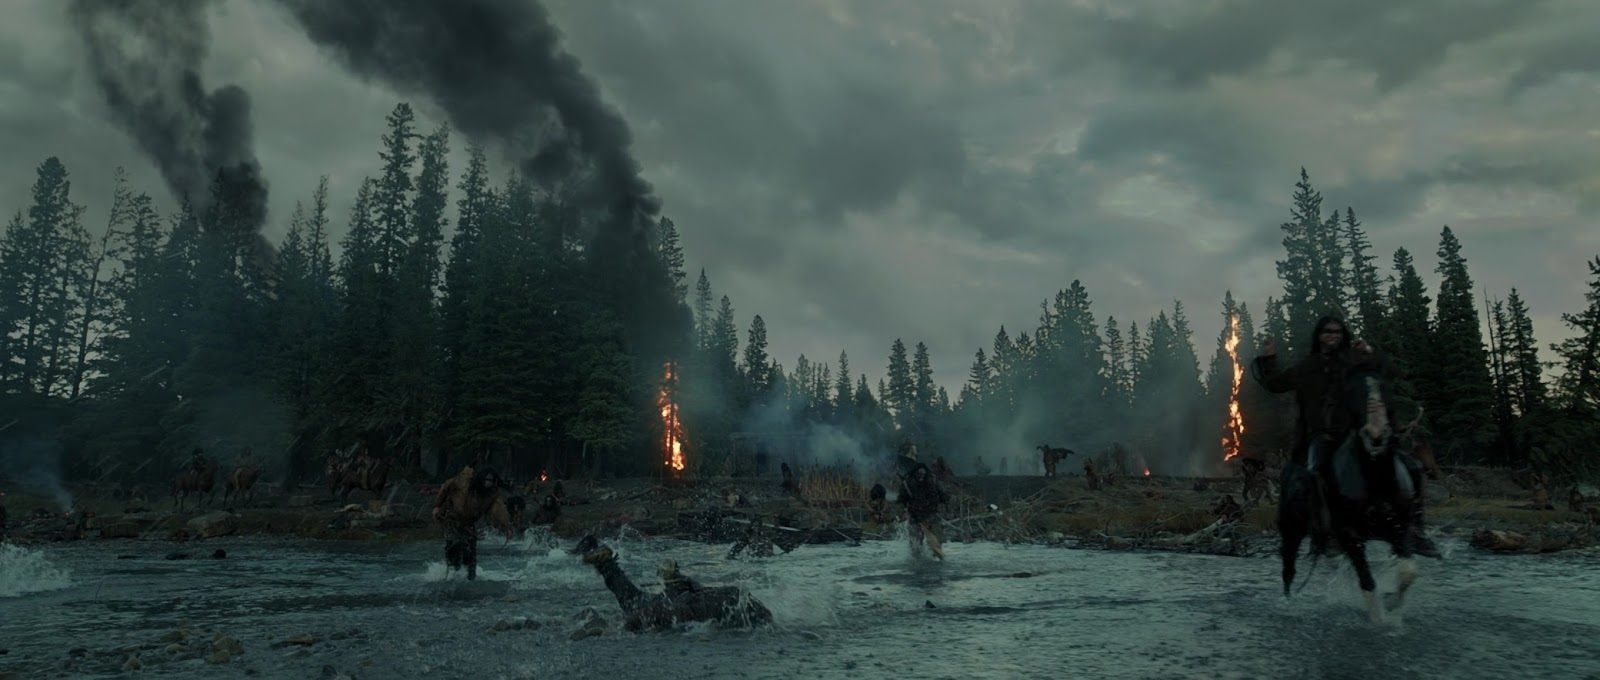 Captura de The Revenant (2015) 4k UltraHD x265 HEVC Latino – Ingles